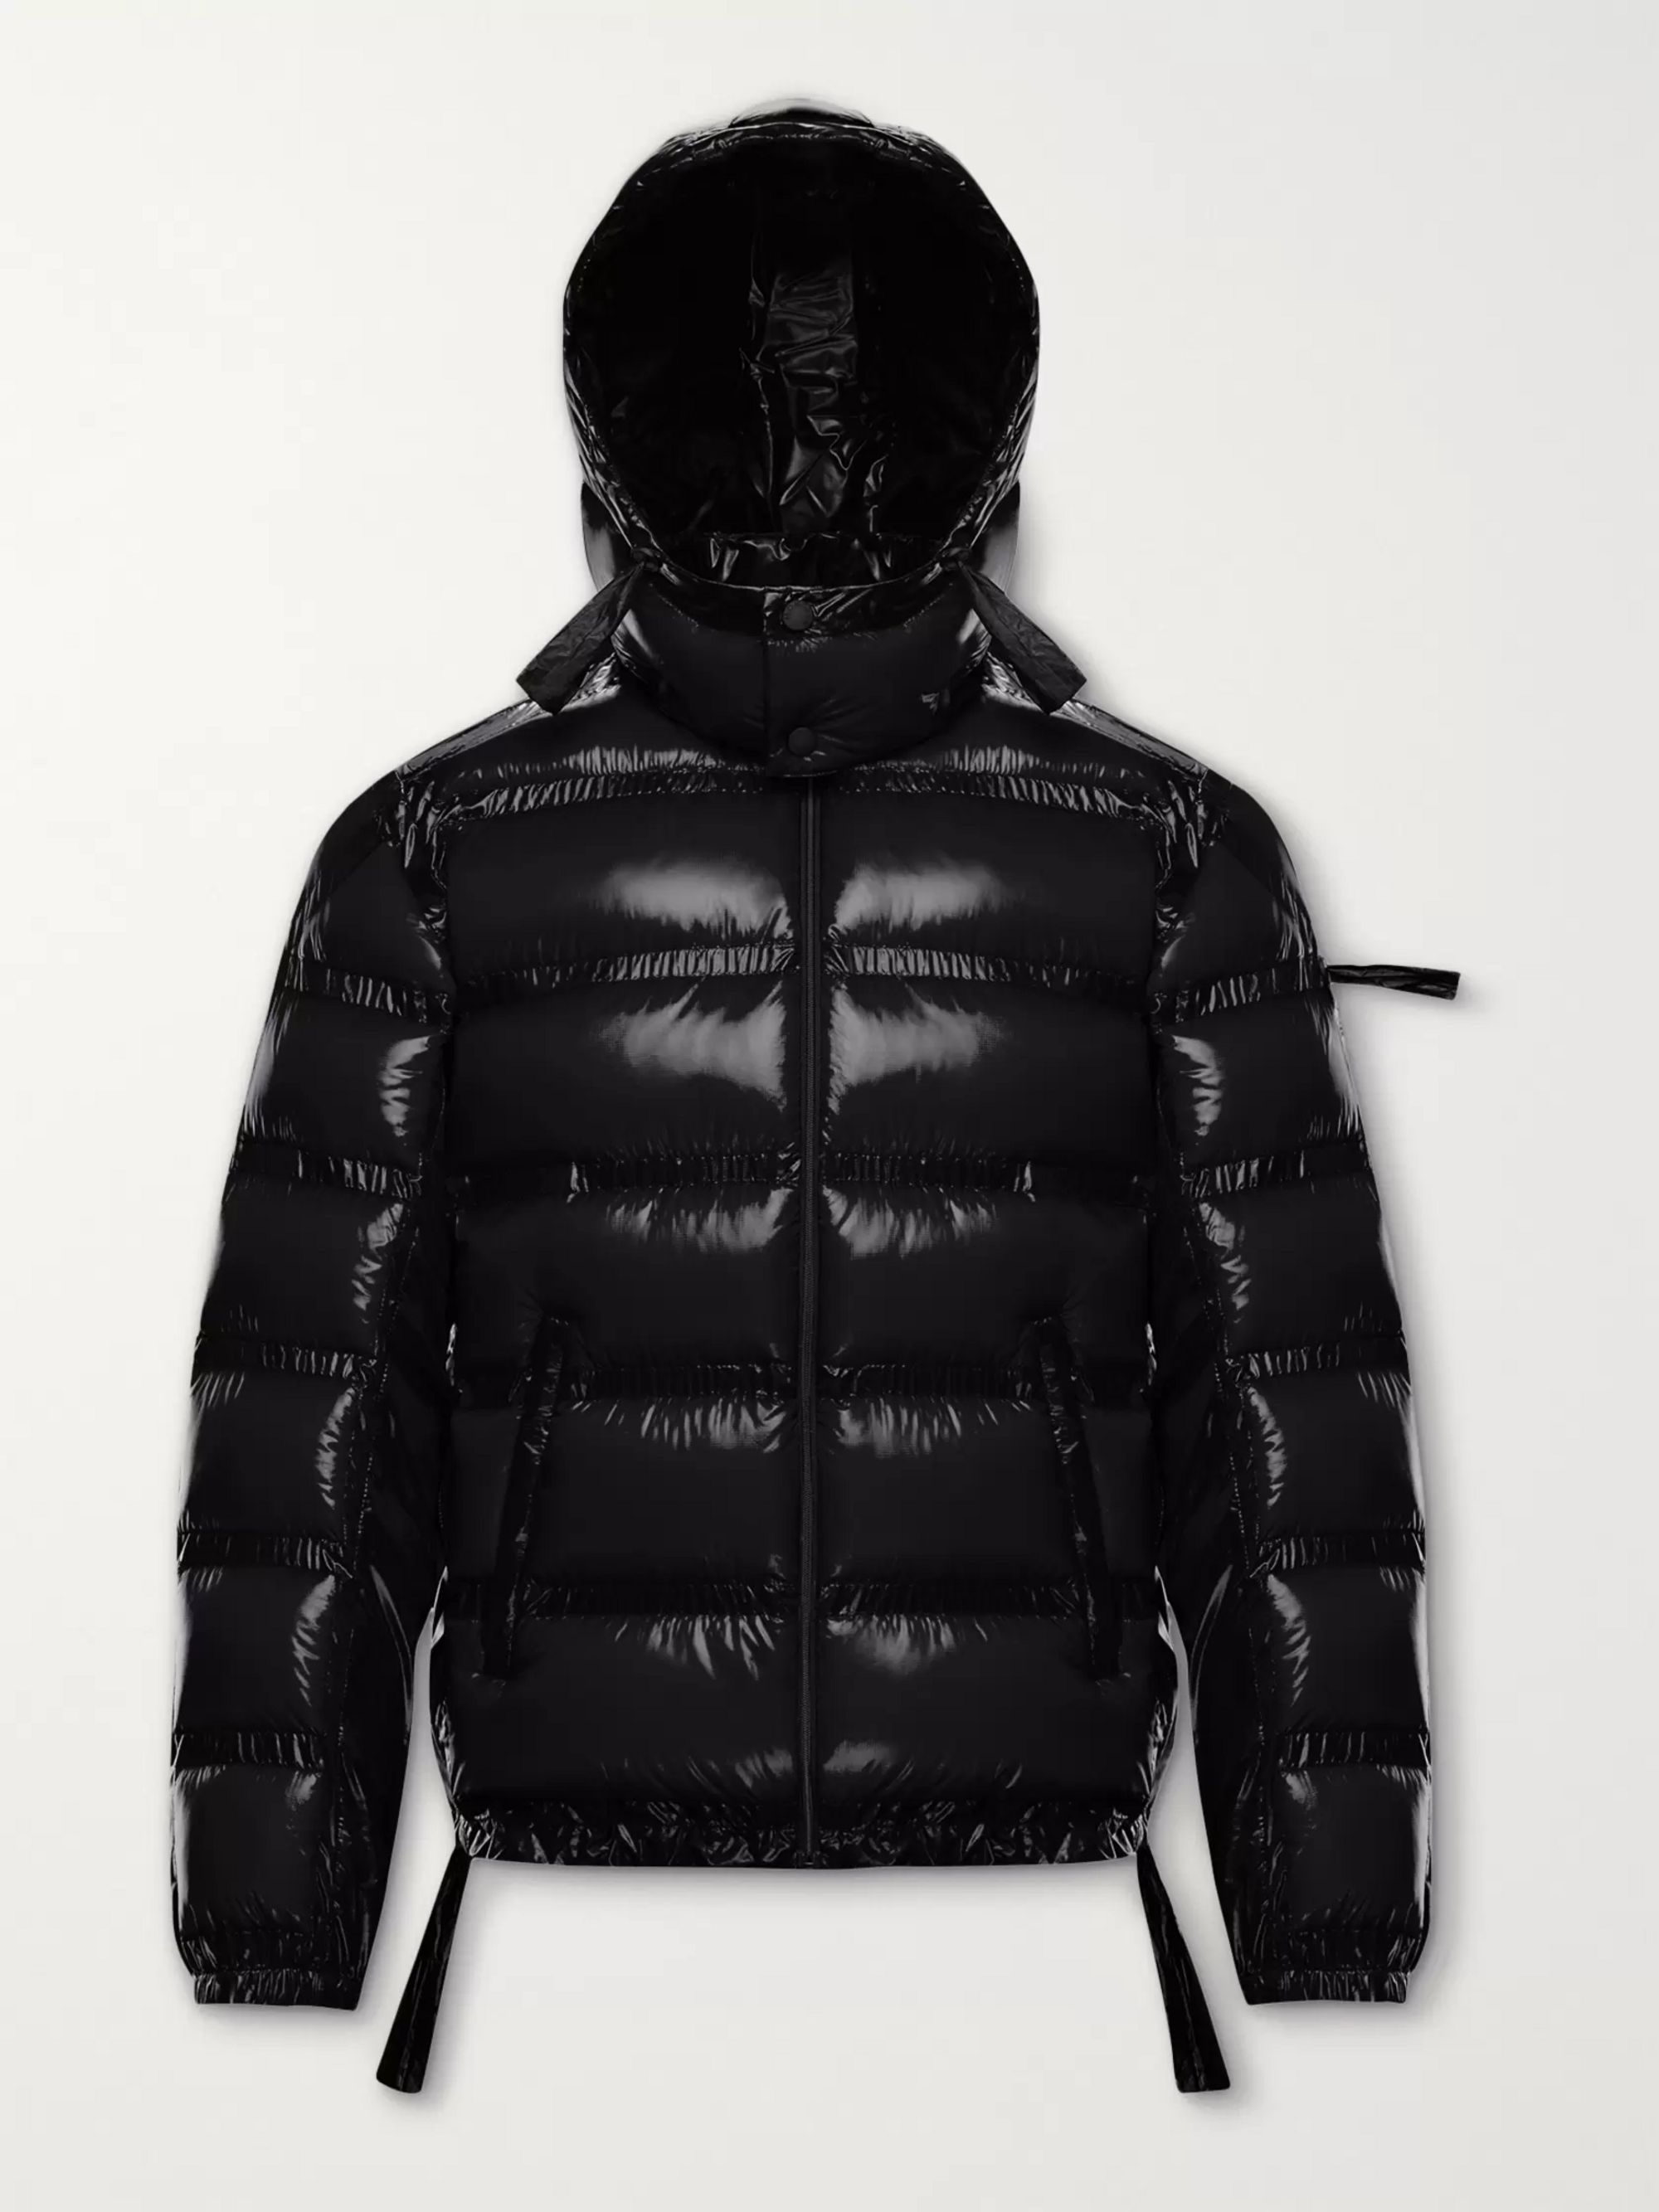 Black 5 Moncler Craig Green Lantz Padded Quilted Shell Hooded Down Jacket | Genius